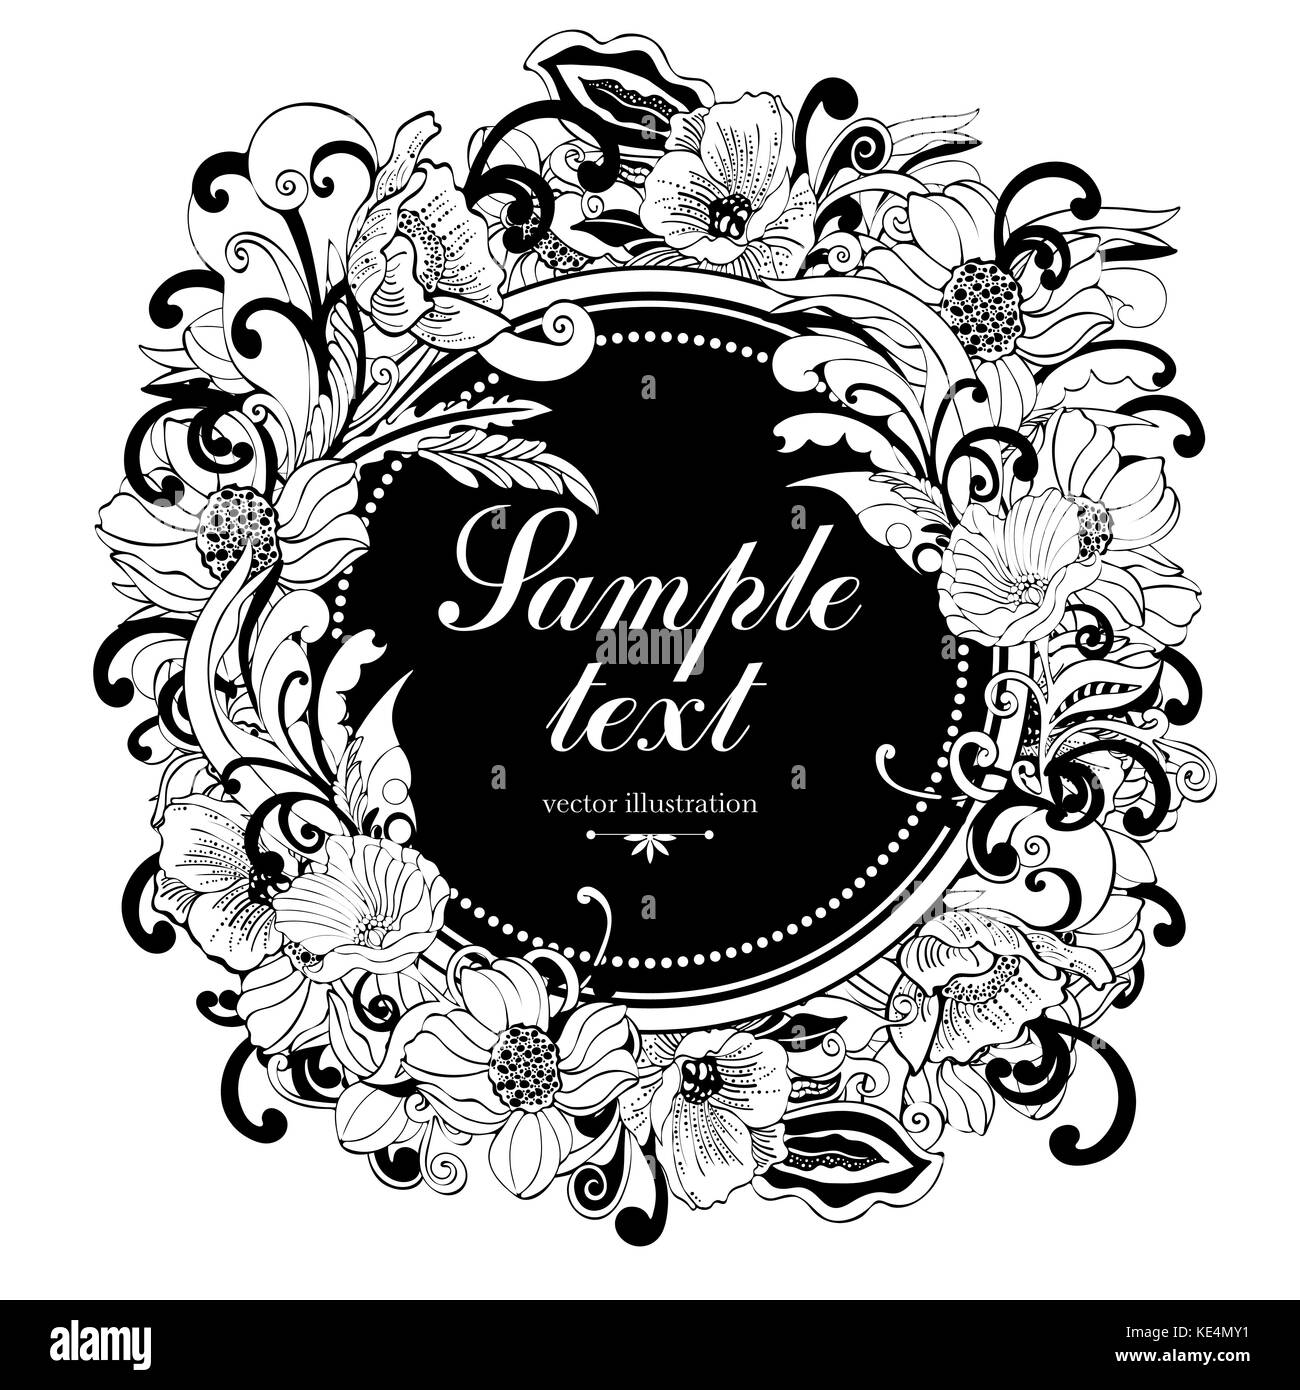 Flower round frame vector monochrome background banner floral flower round frame vector monochrome background banner floral border outline wreath abstract vector black and white flowers petals leaves curl mightylinksfo